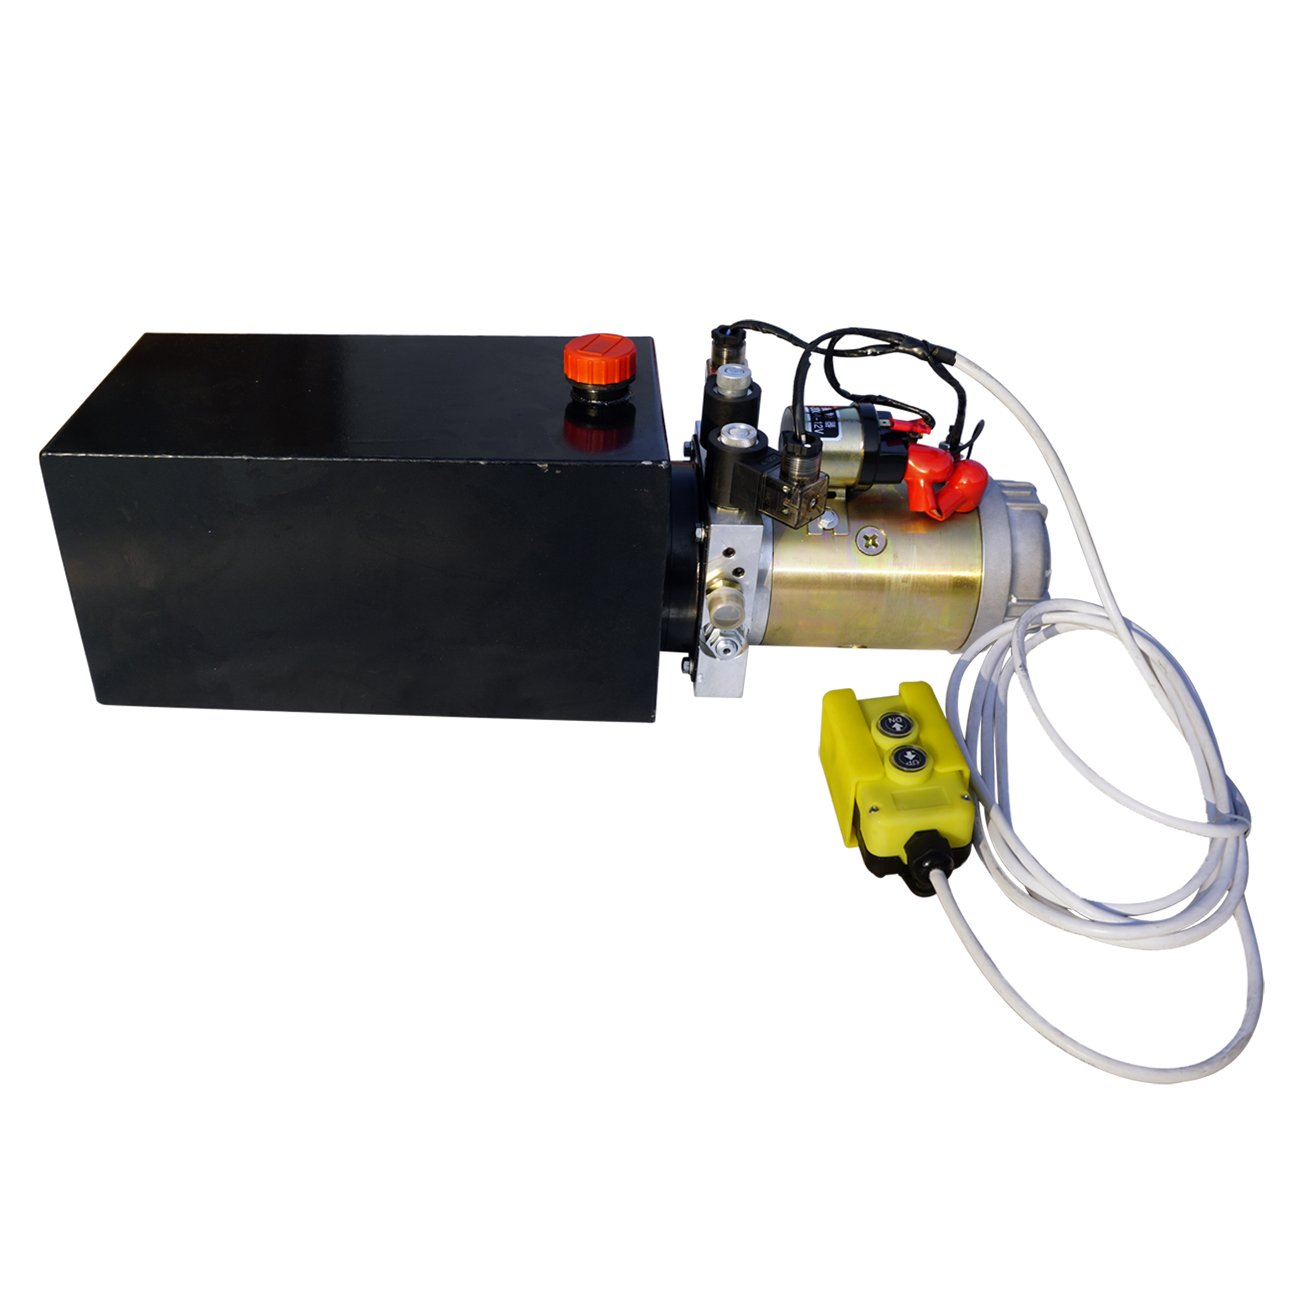 ECO-WORTHY Hydraulic Power Unit 10 Quart Pump Double Acting Hydraulic Power 12V DC Steel Tank Hydraulic Pump Power Unit for Dump Trailer Car Lifting